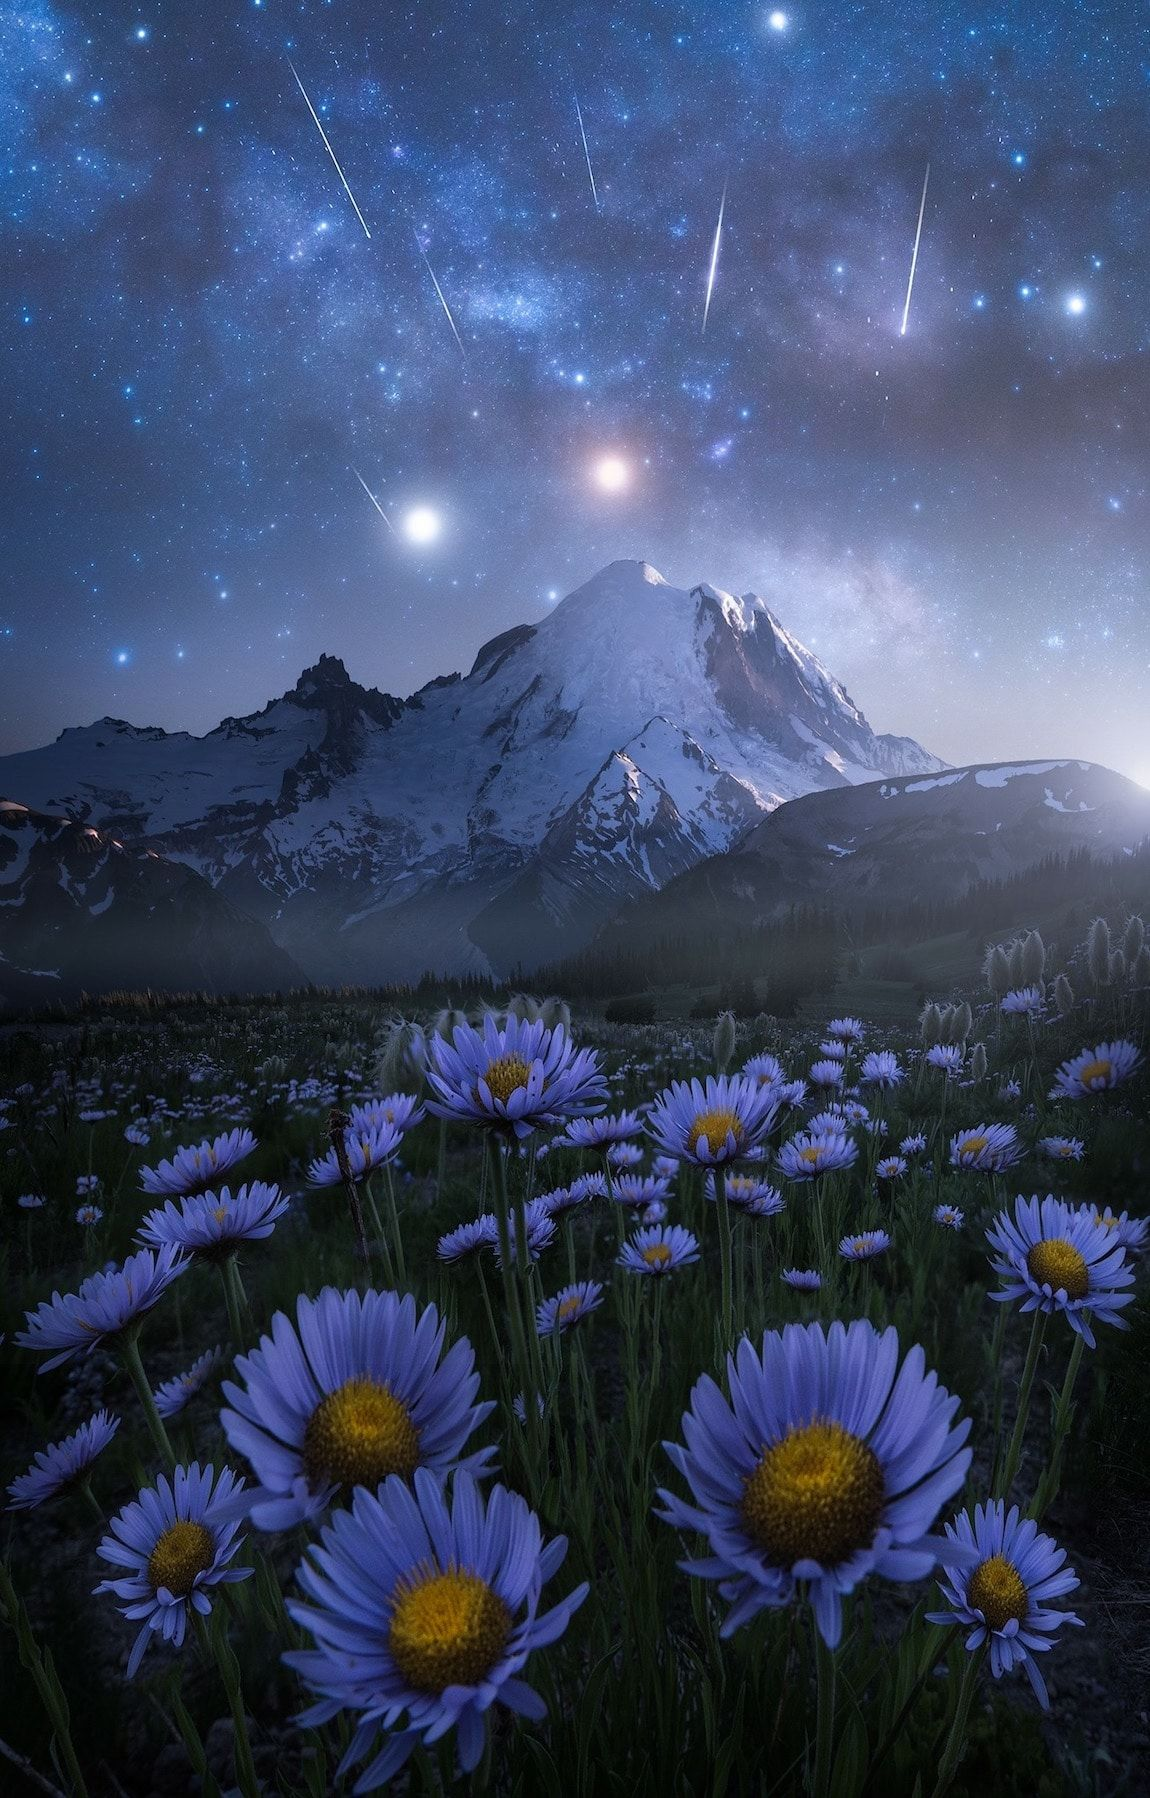 Dreamy Landscapes At Night Inspired By Space Stars And Video Games Night Landscape Photography Dreamy Landscapes Night Landscape